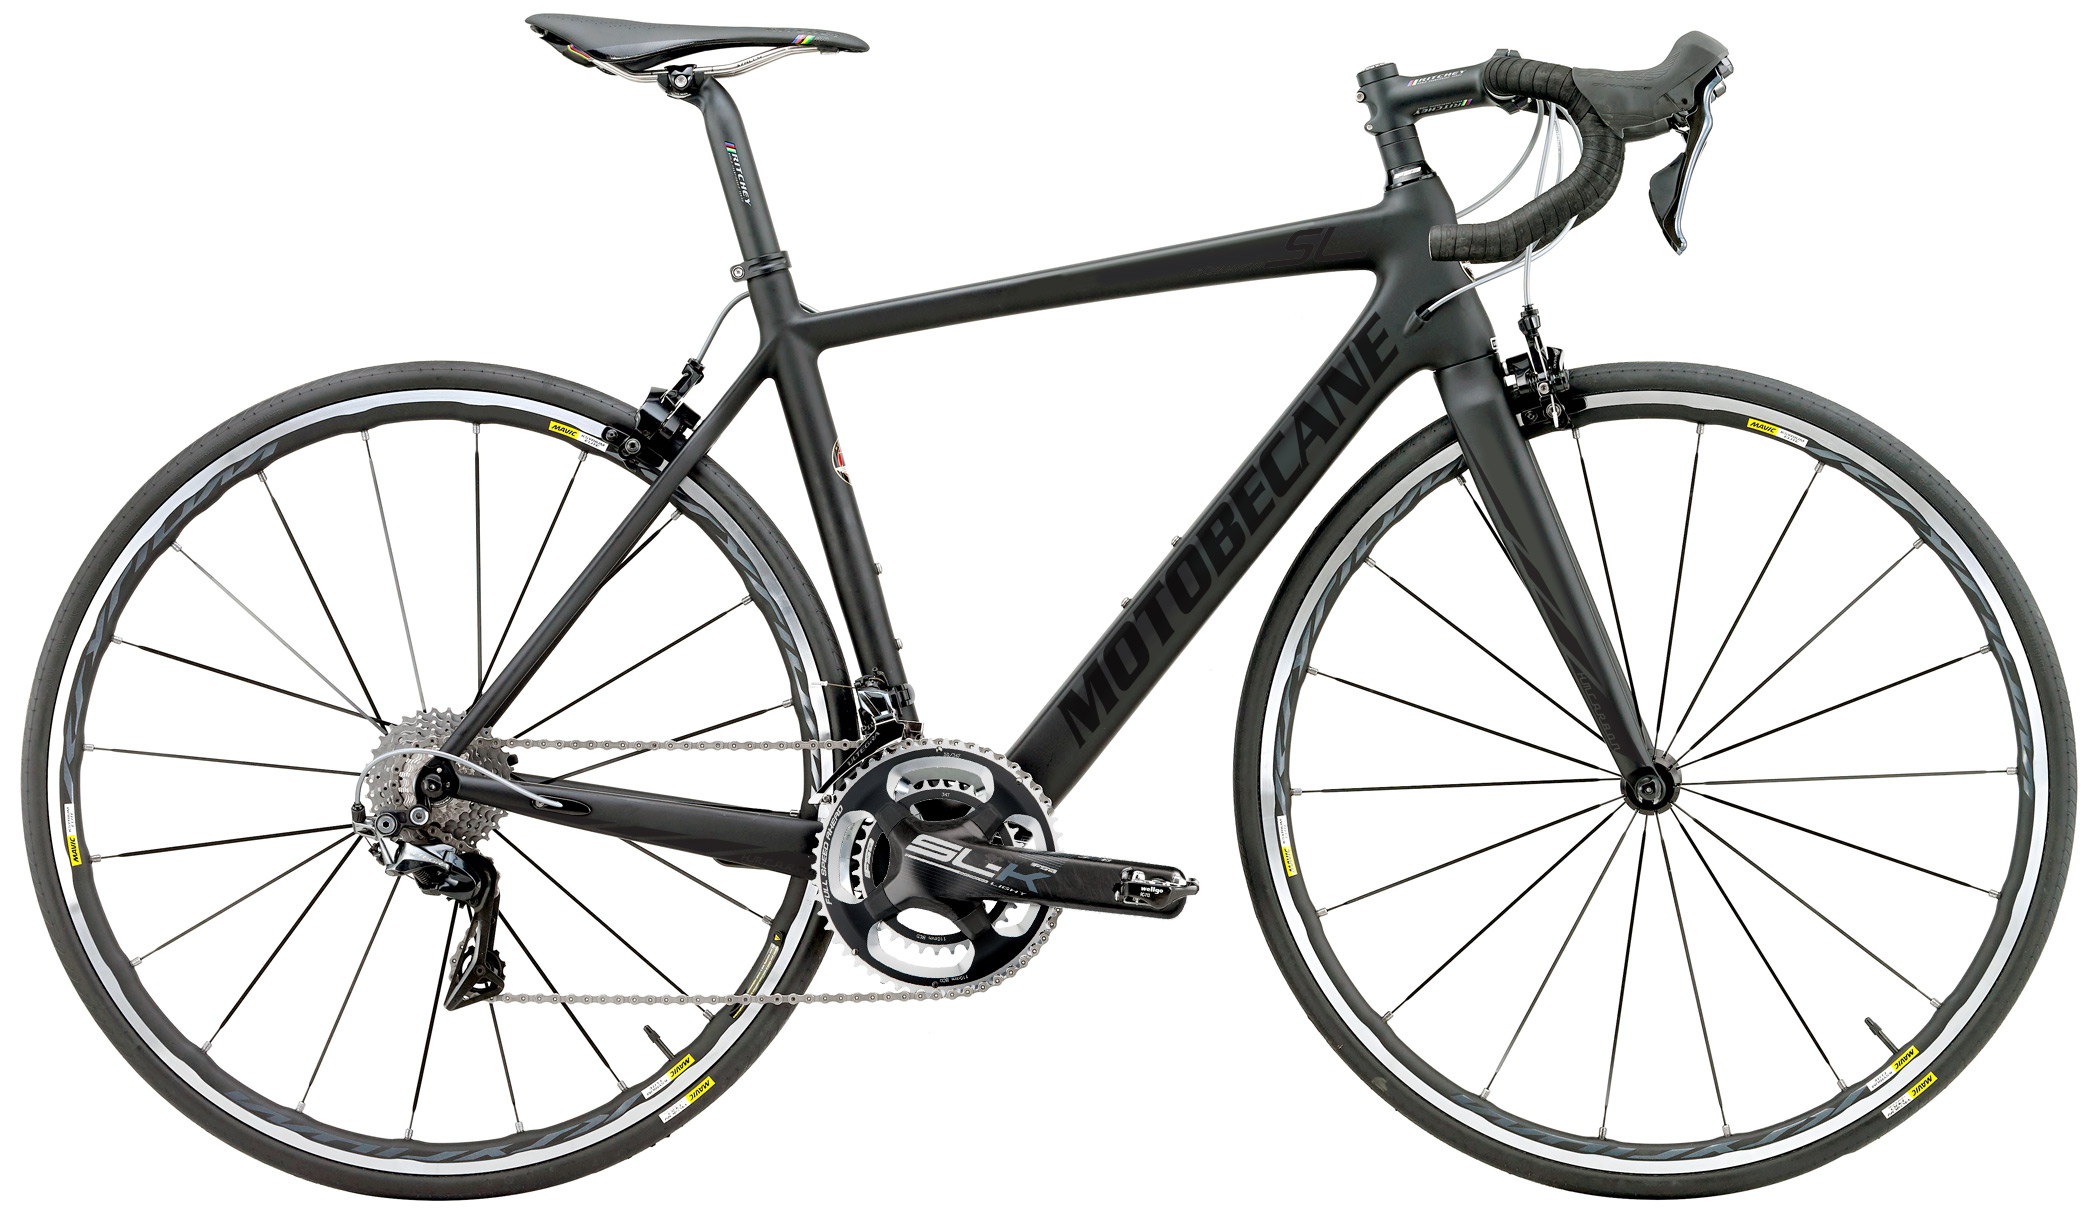 Save Up To 60% Off Super Light Carbon Aero Road Bikes with